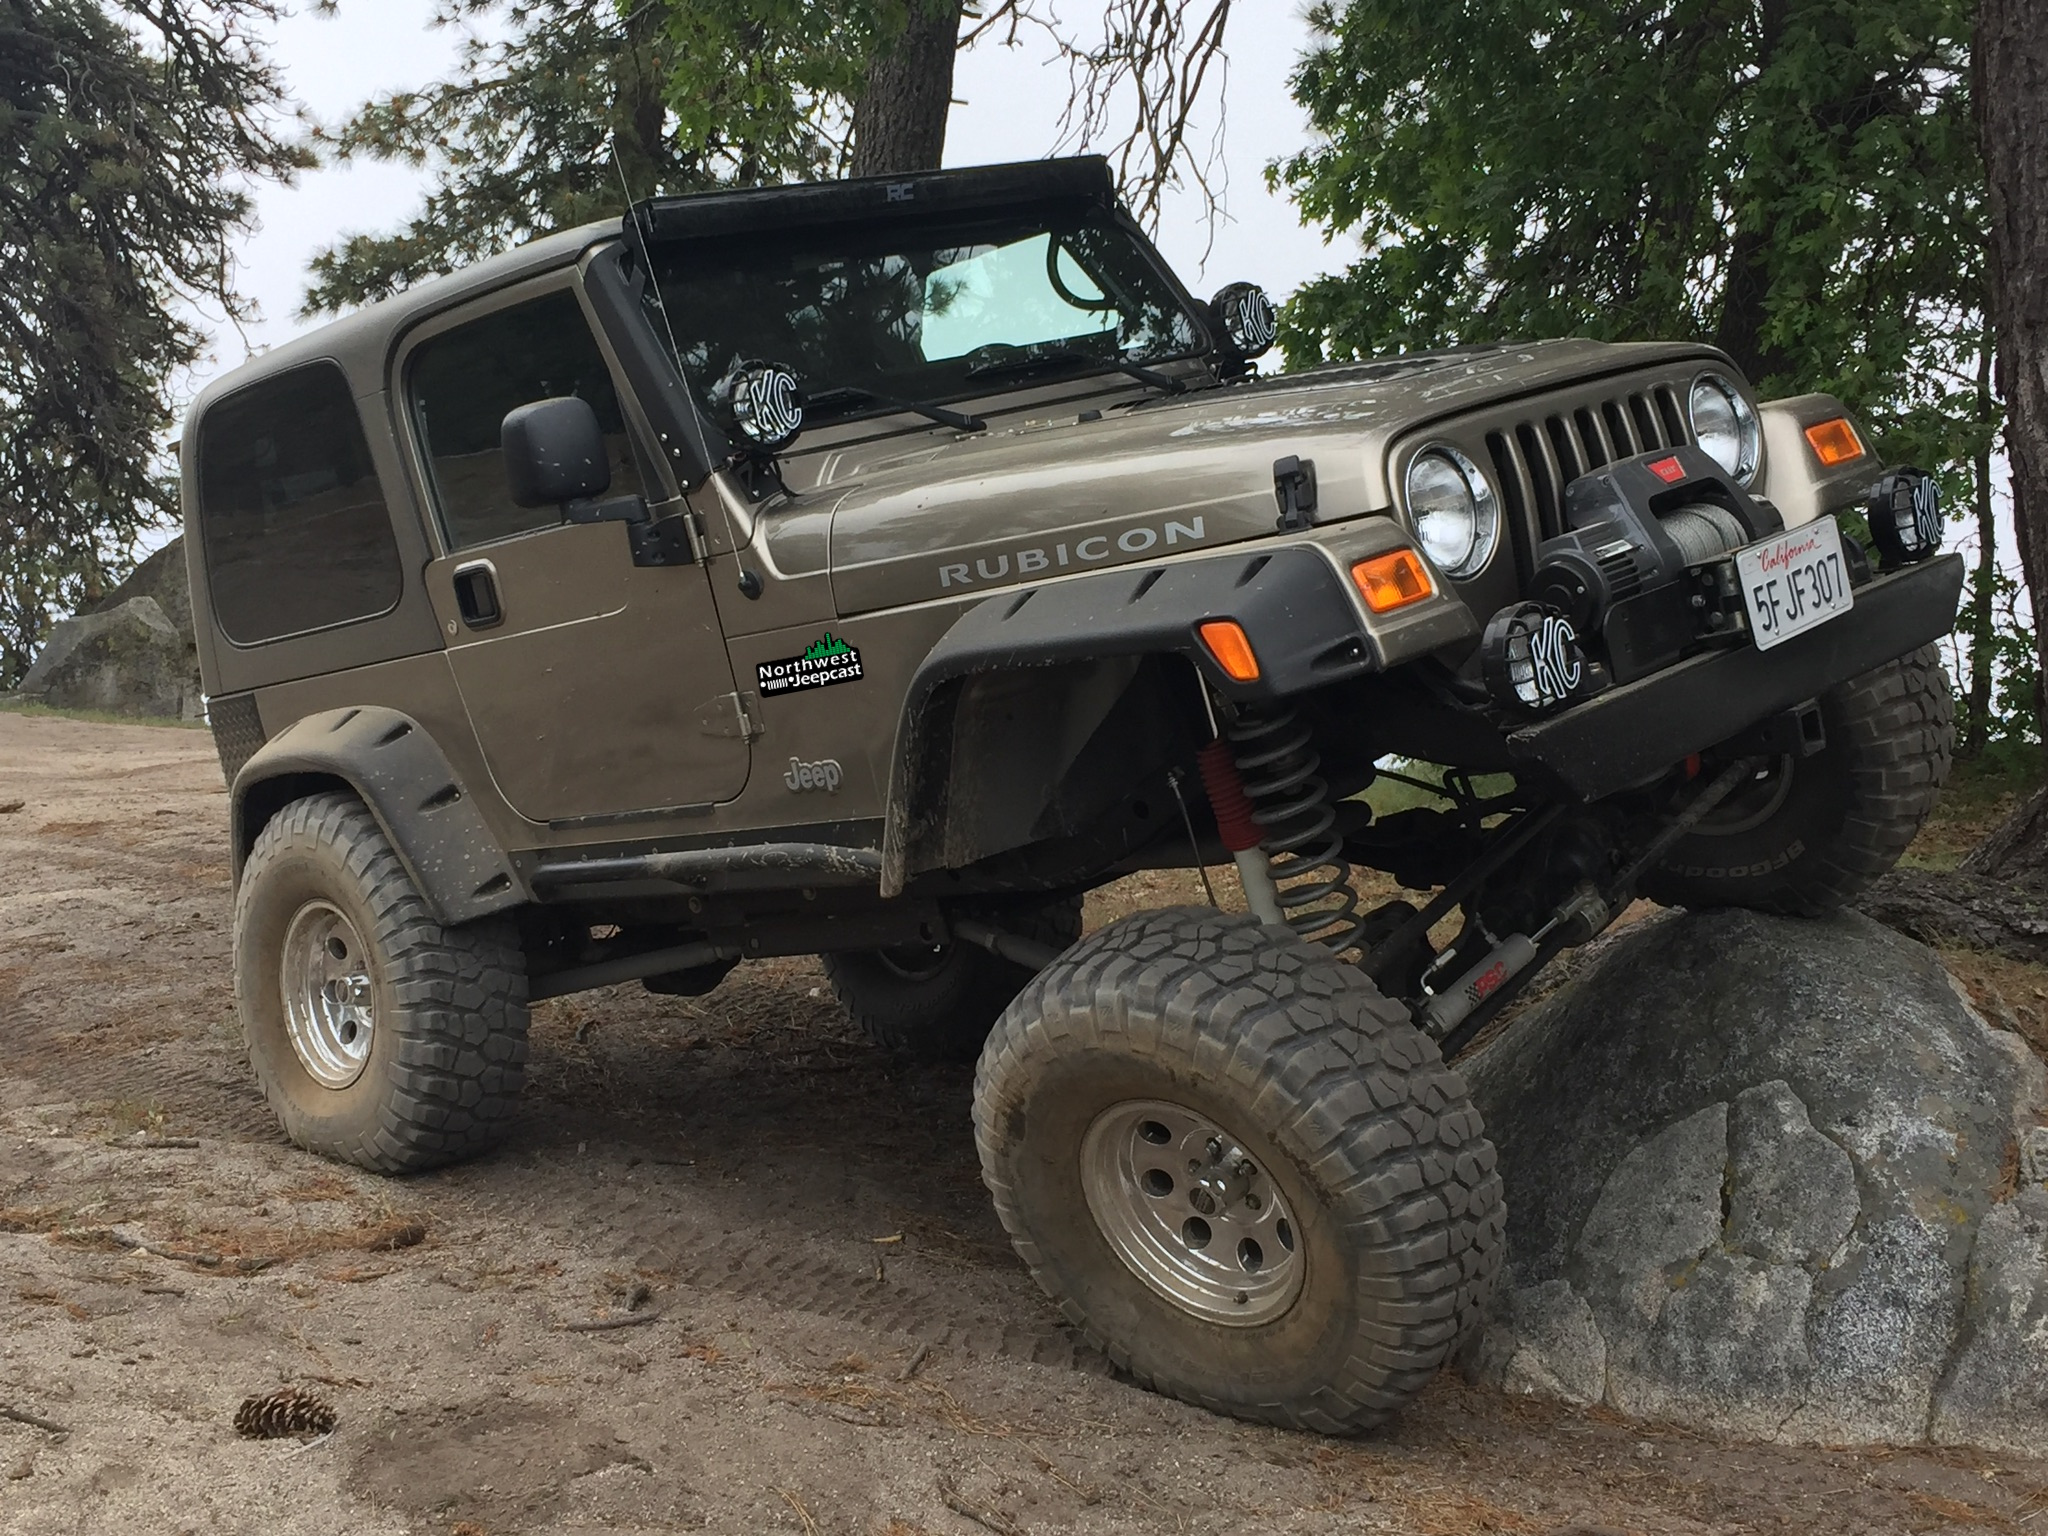 Northwest Jeepcast - A Jeep Podcast - Listener Rides